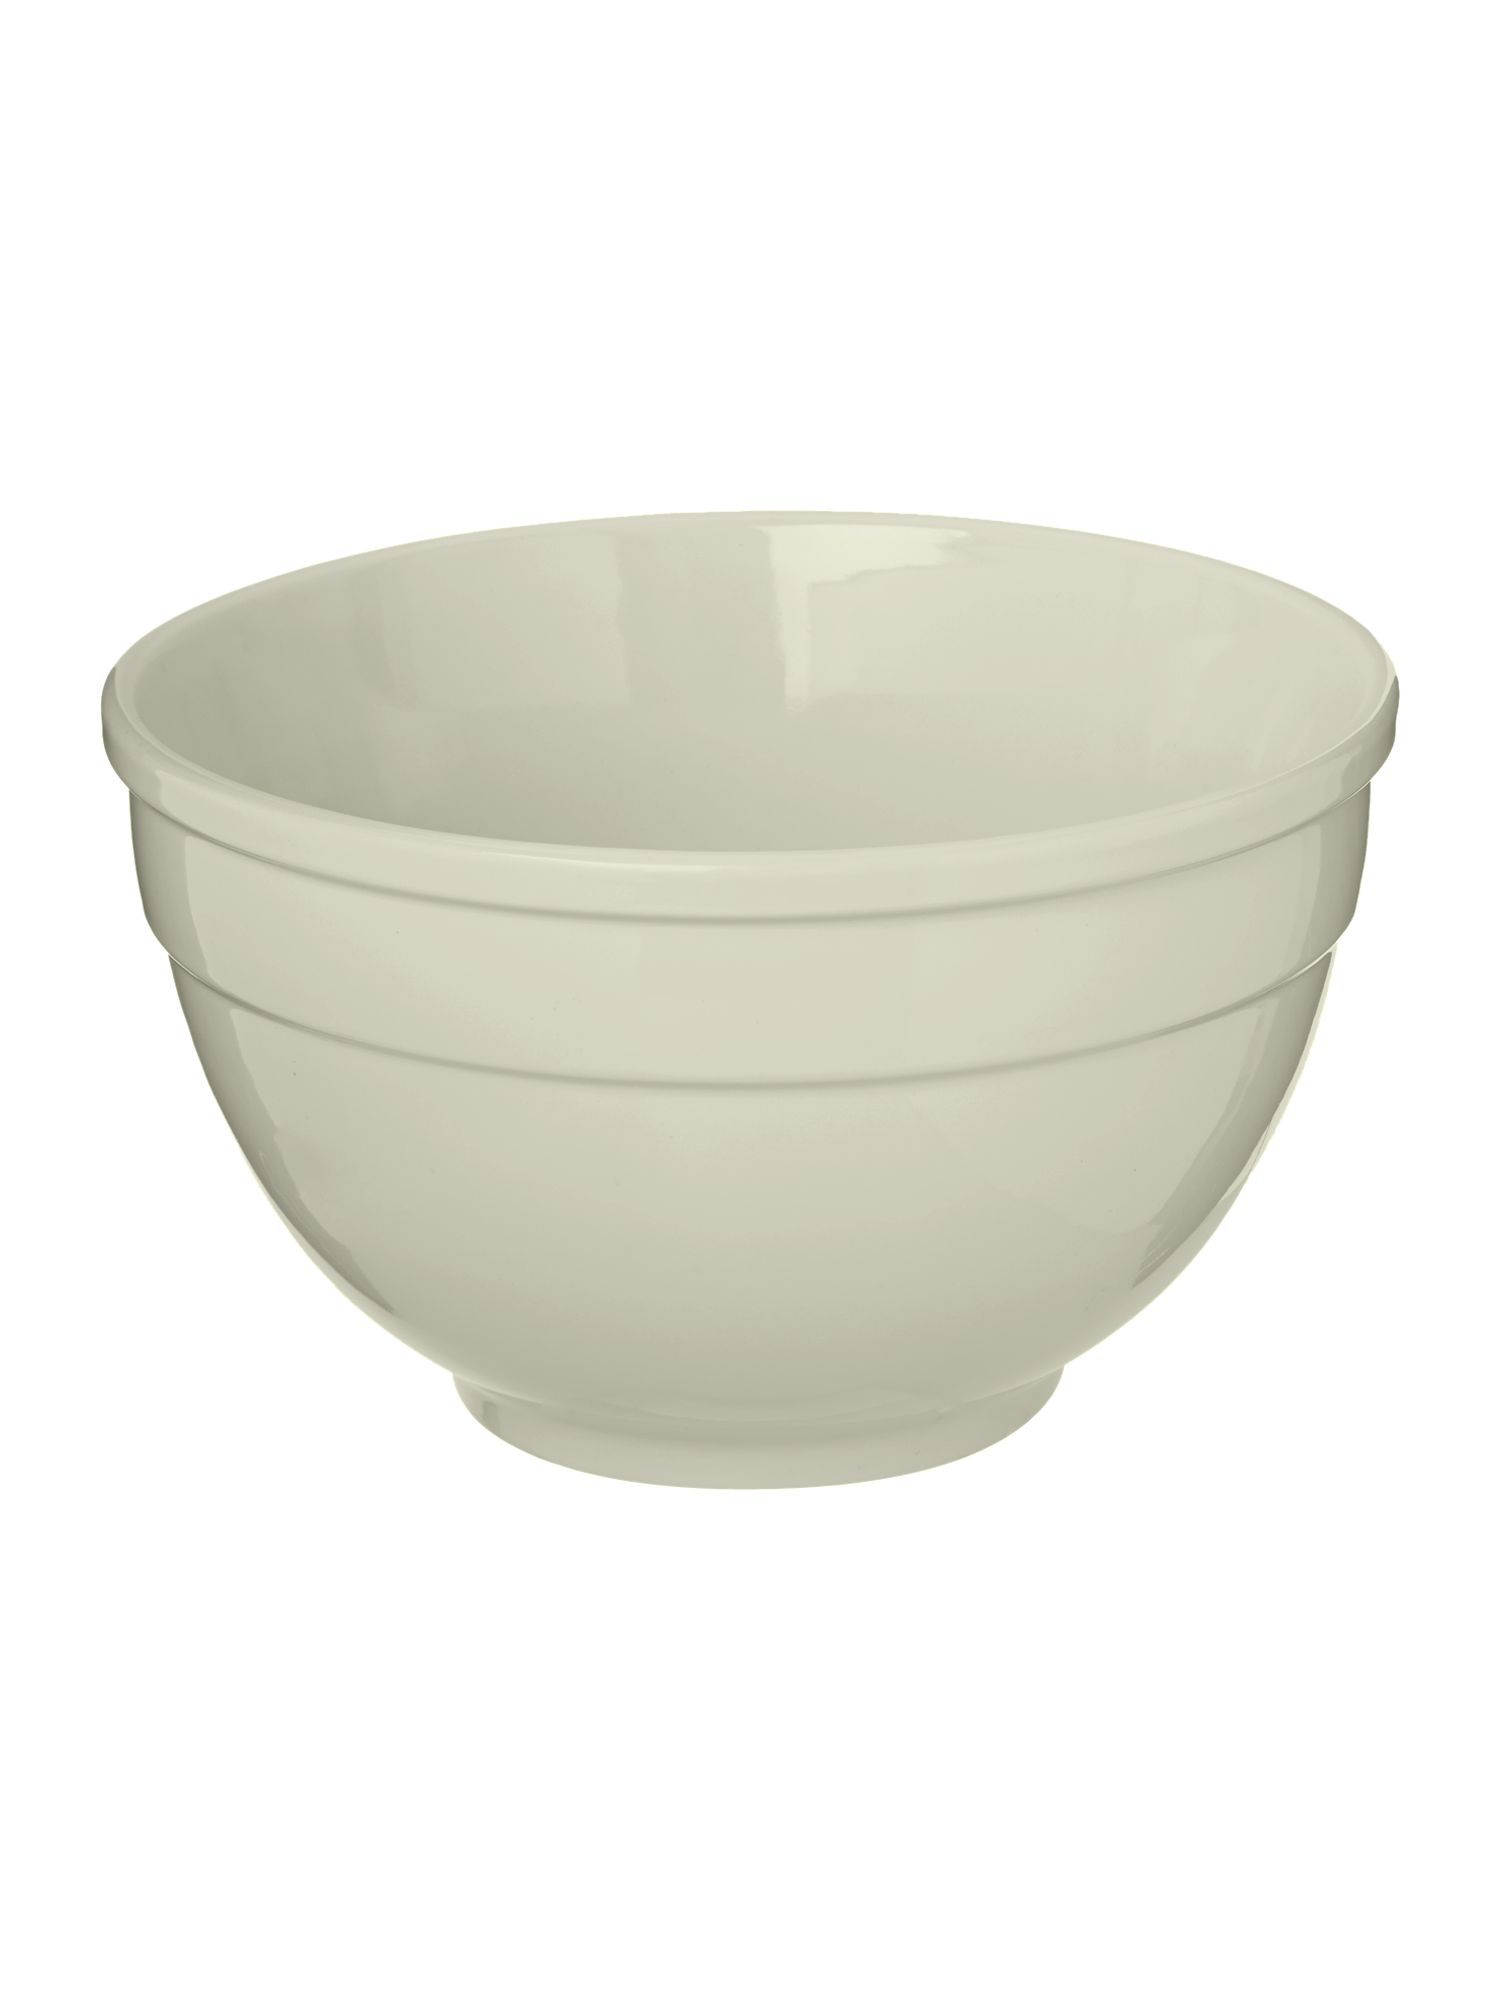 Maison large mixing bowl, white